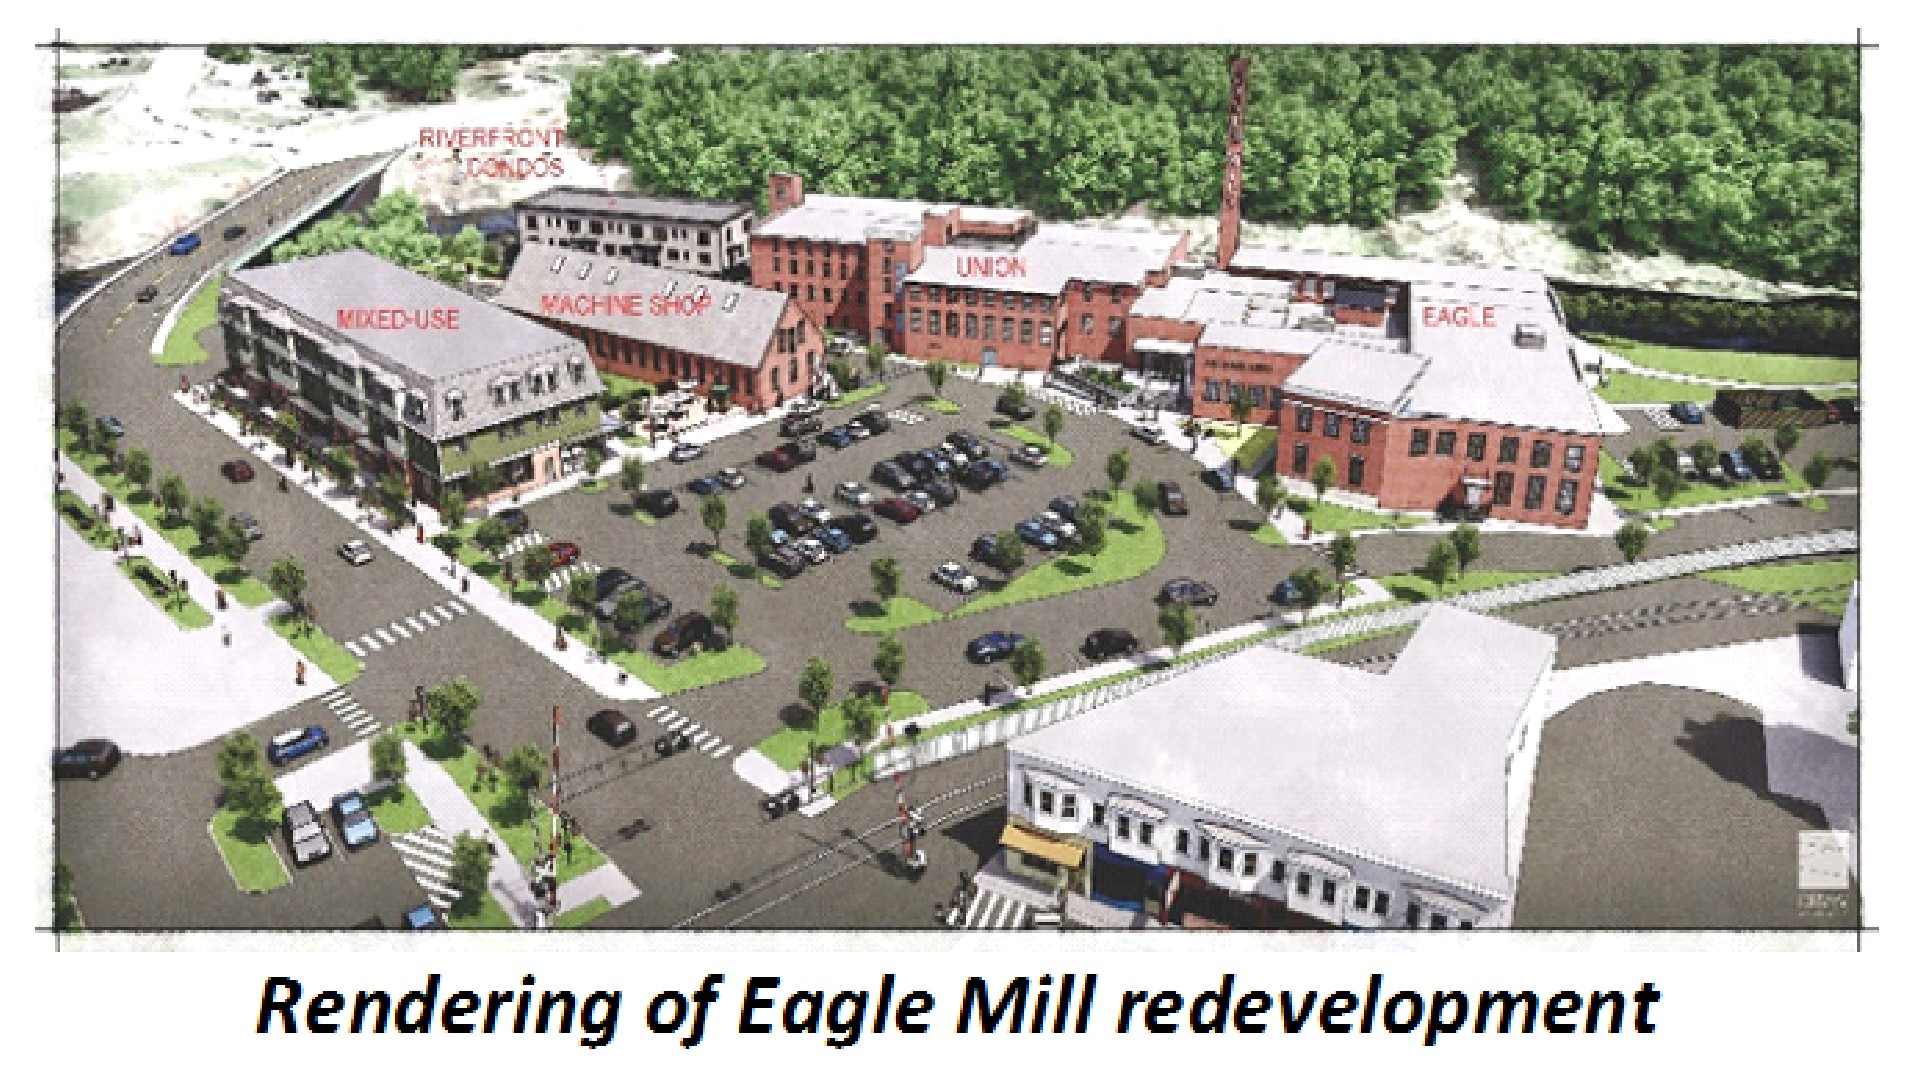 Eagle Mill Redevelopment